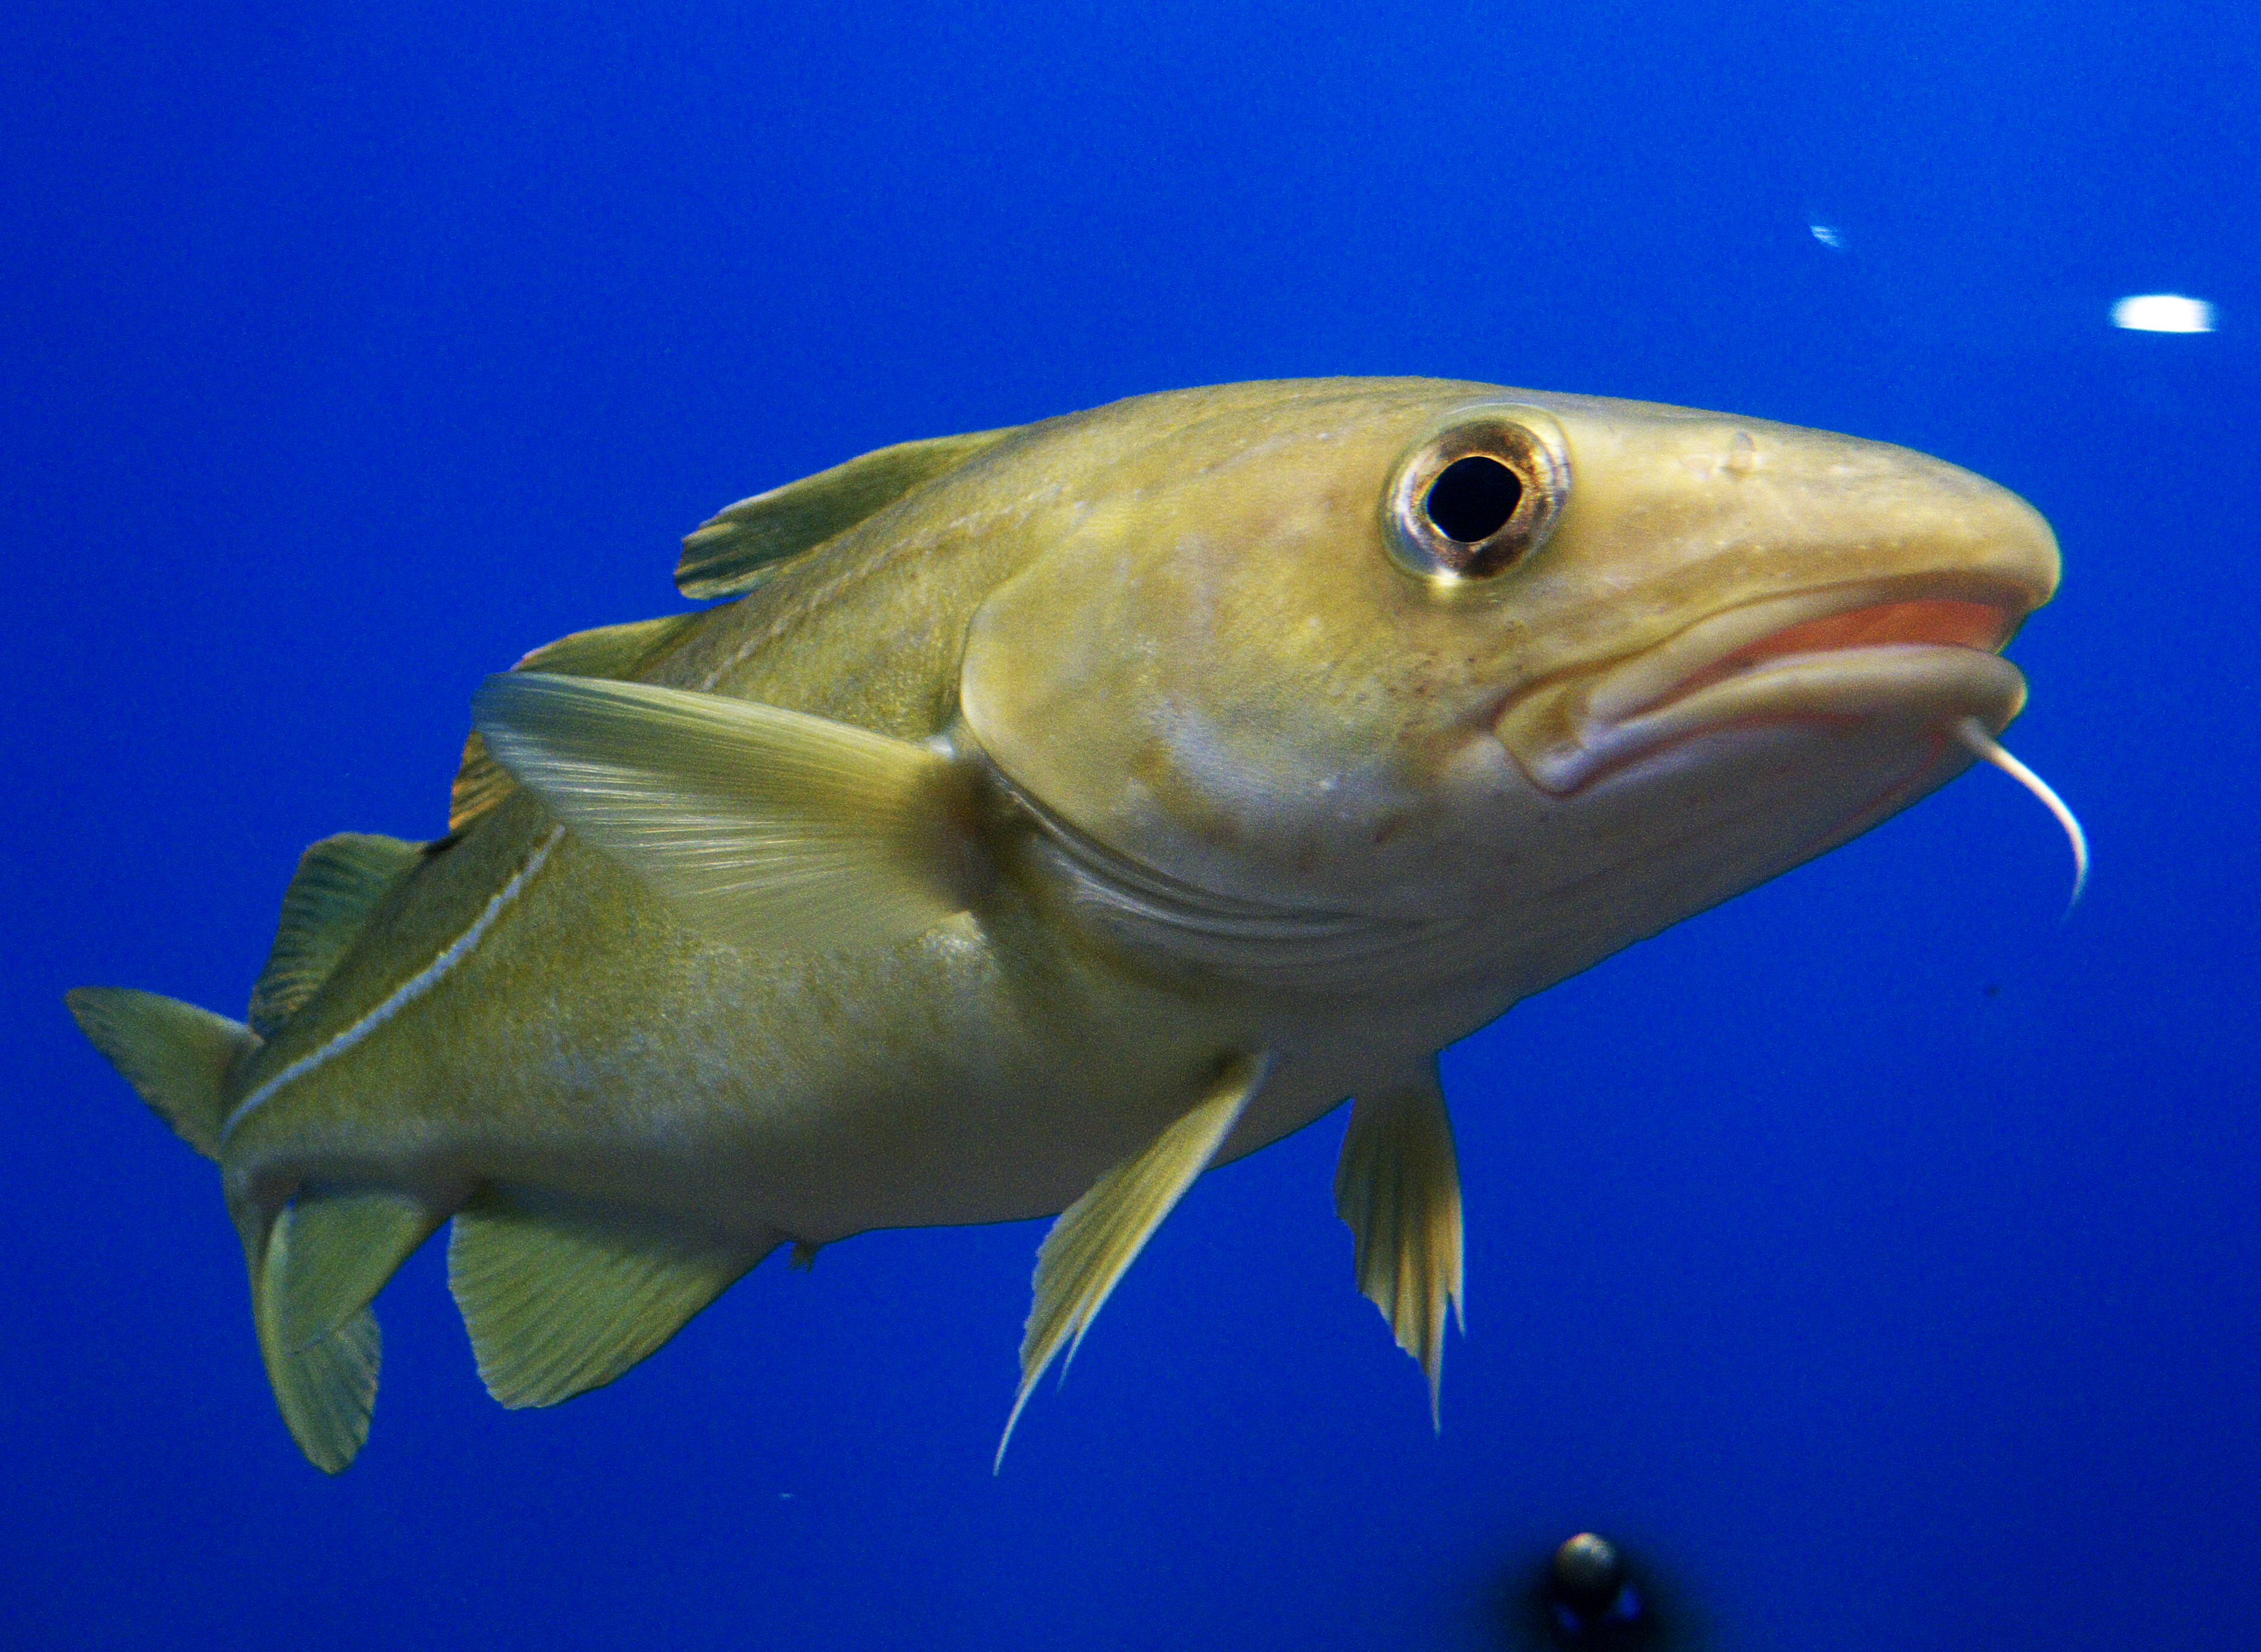 It's a match! Cod do best when paired with copepods